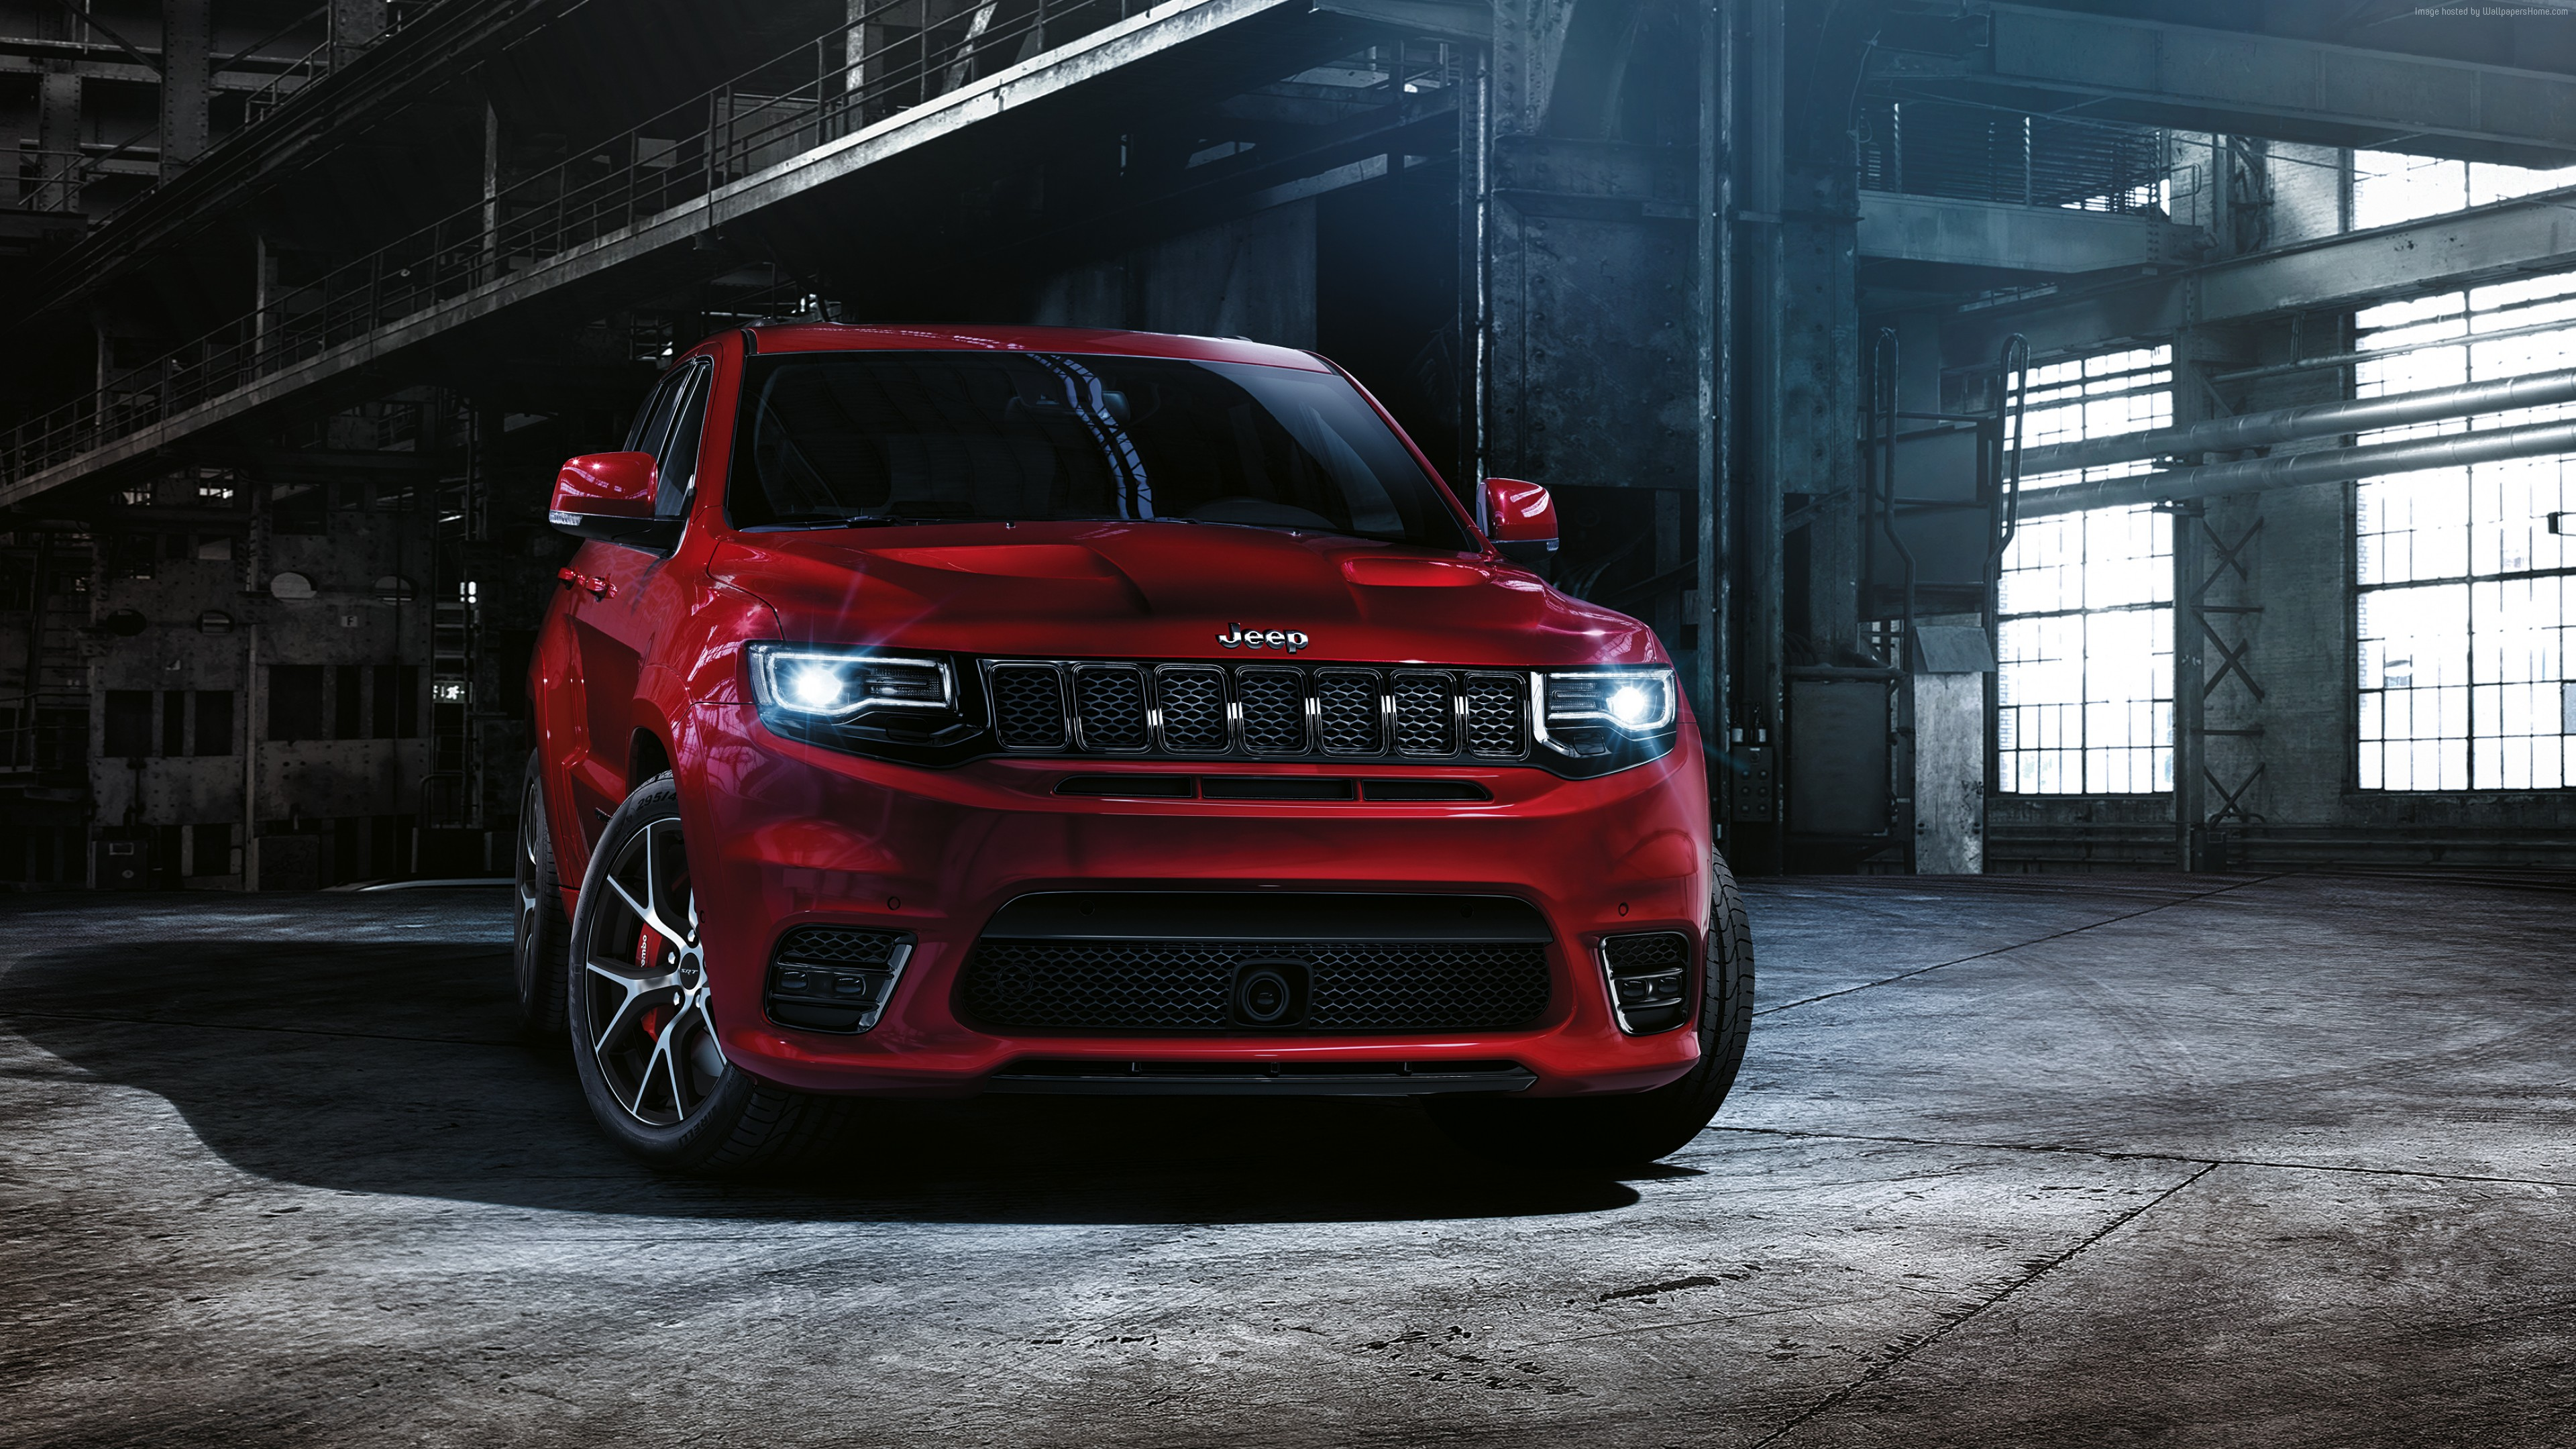 2016 jeep grand cherokee srt, hd cars, 4k wallpapers, images